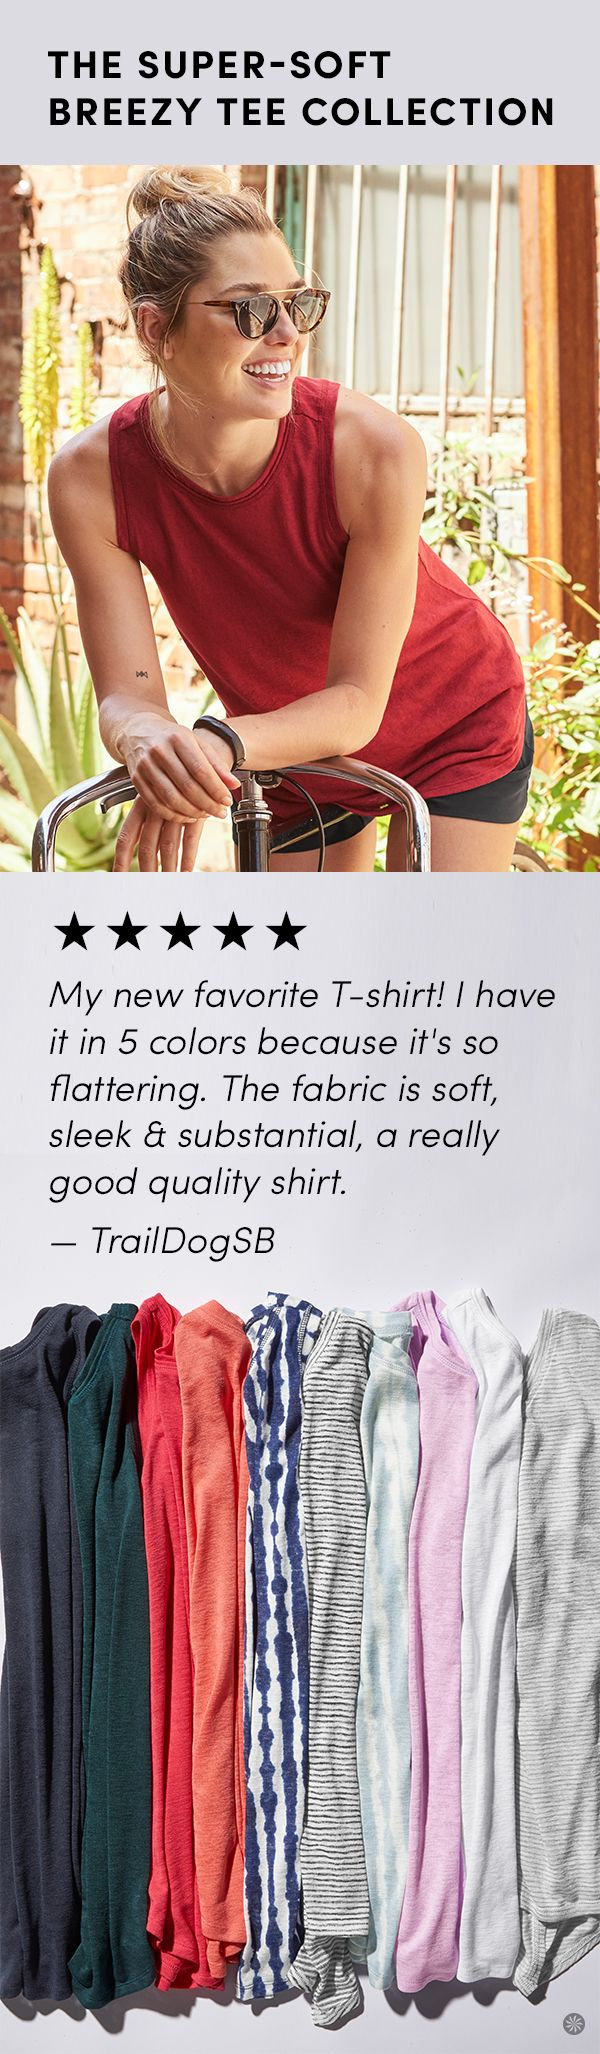 A favorite for the summer season, the Breezy Collection of tops are made from a premium lenzing modal fabric blend that's sustainably sourced from european beachwood trees. They're super-soft, and made for life on the go. Choose from a wide array of new prints, colors and designs.